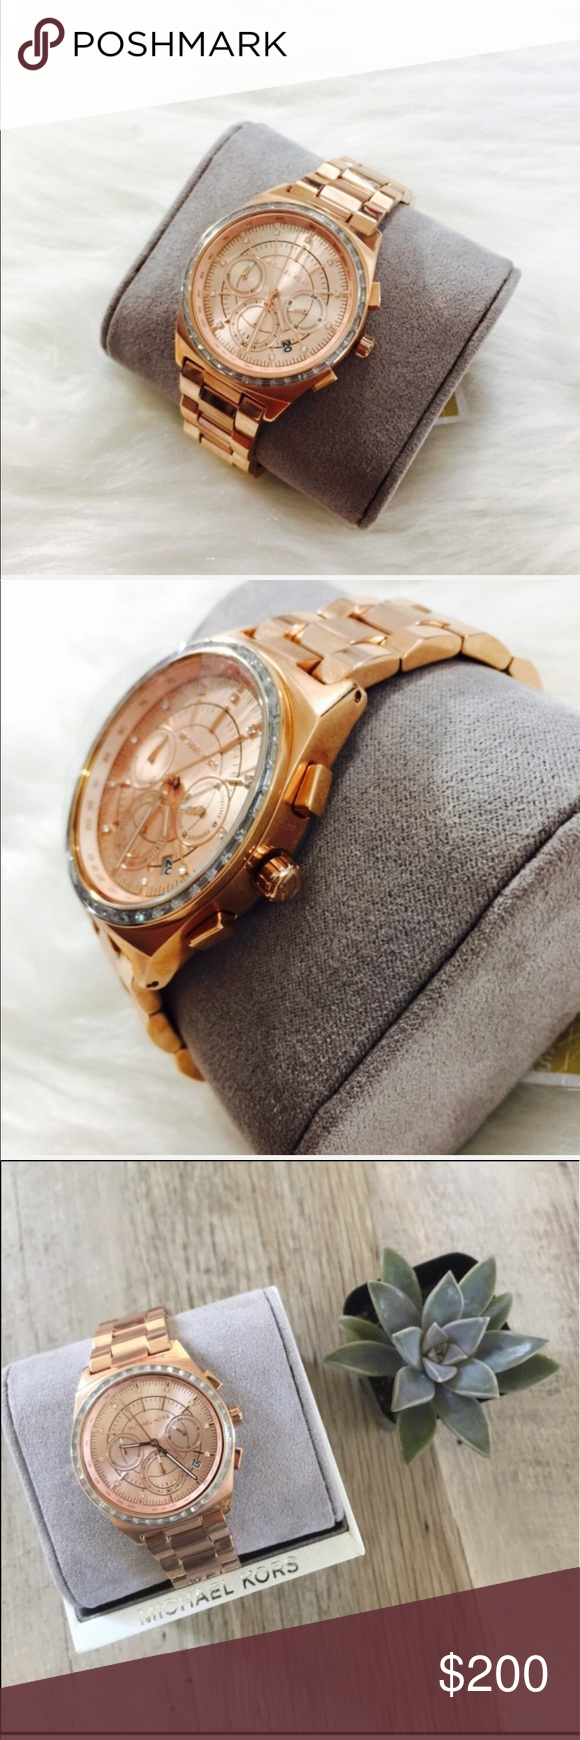 Michael Kors Vail Chronograph Rose Gold Watch